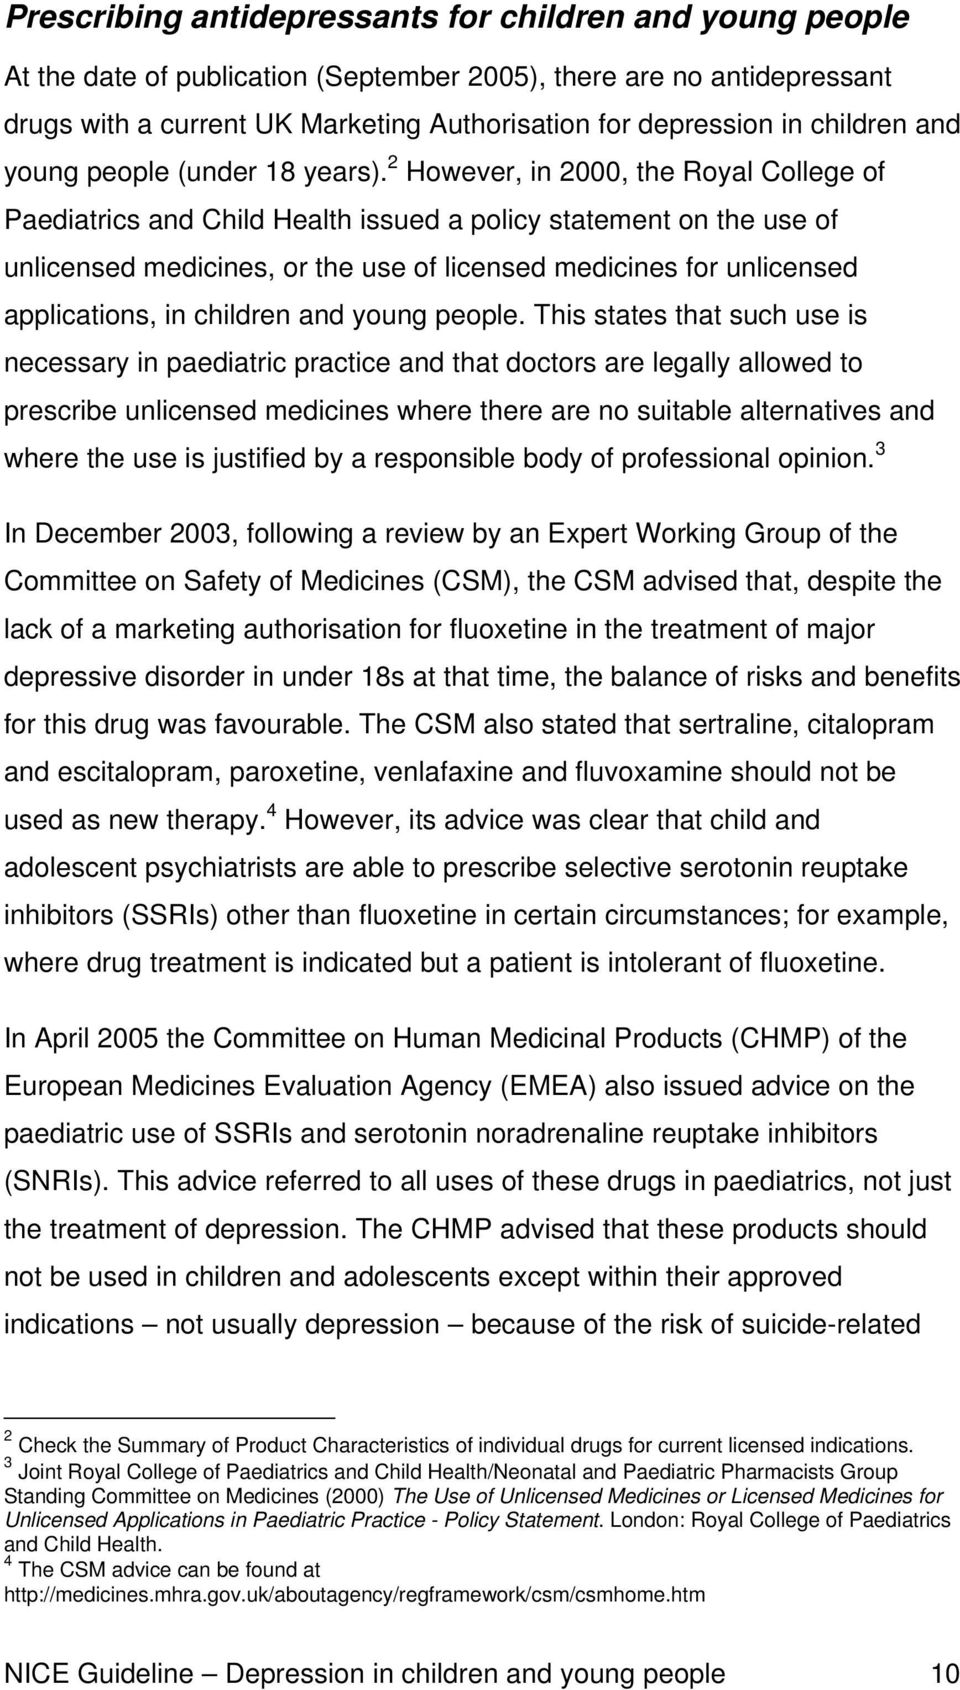 2 However, in 2000, the Royal College of Paediatrics and Child Health issued a policy statement on the use of unlicensed medicines, or the use of licensed medicines for unlicensed applications, in